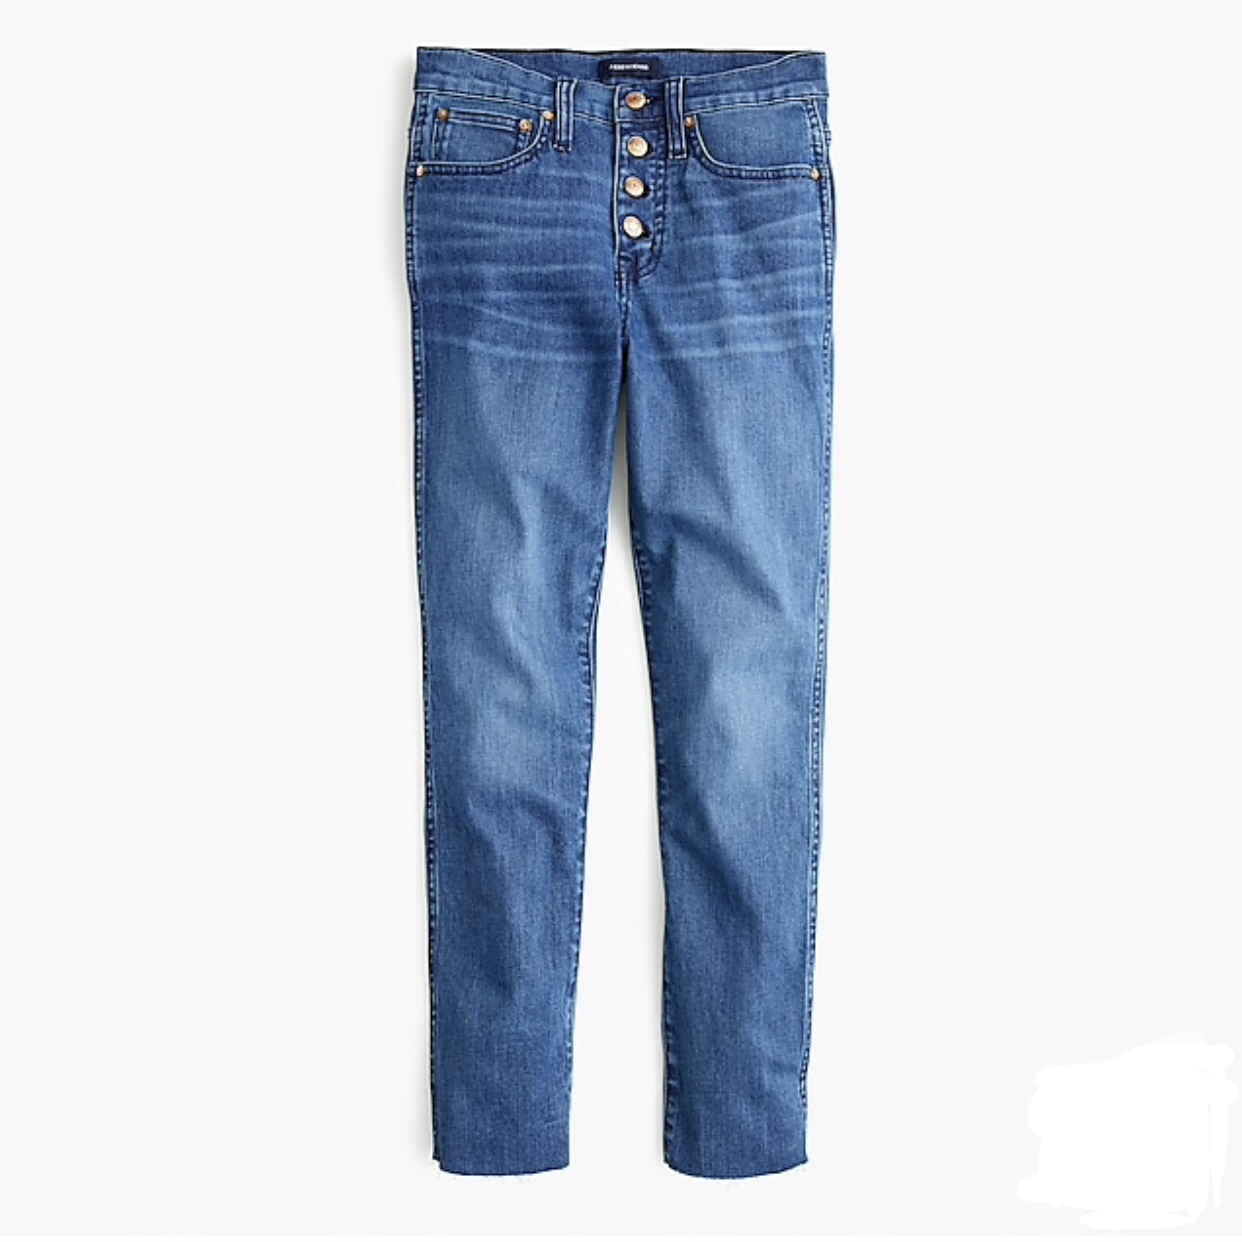 J. Crew Petite Vintage Straight Eco Jean With Button Fly